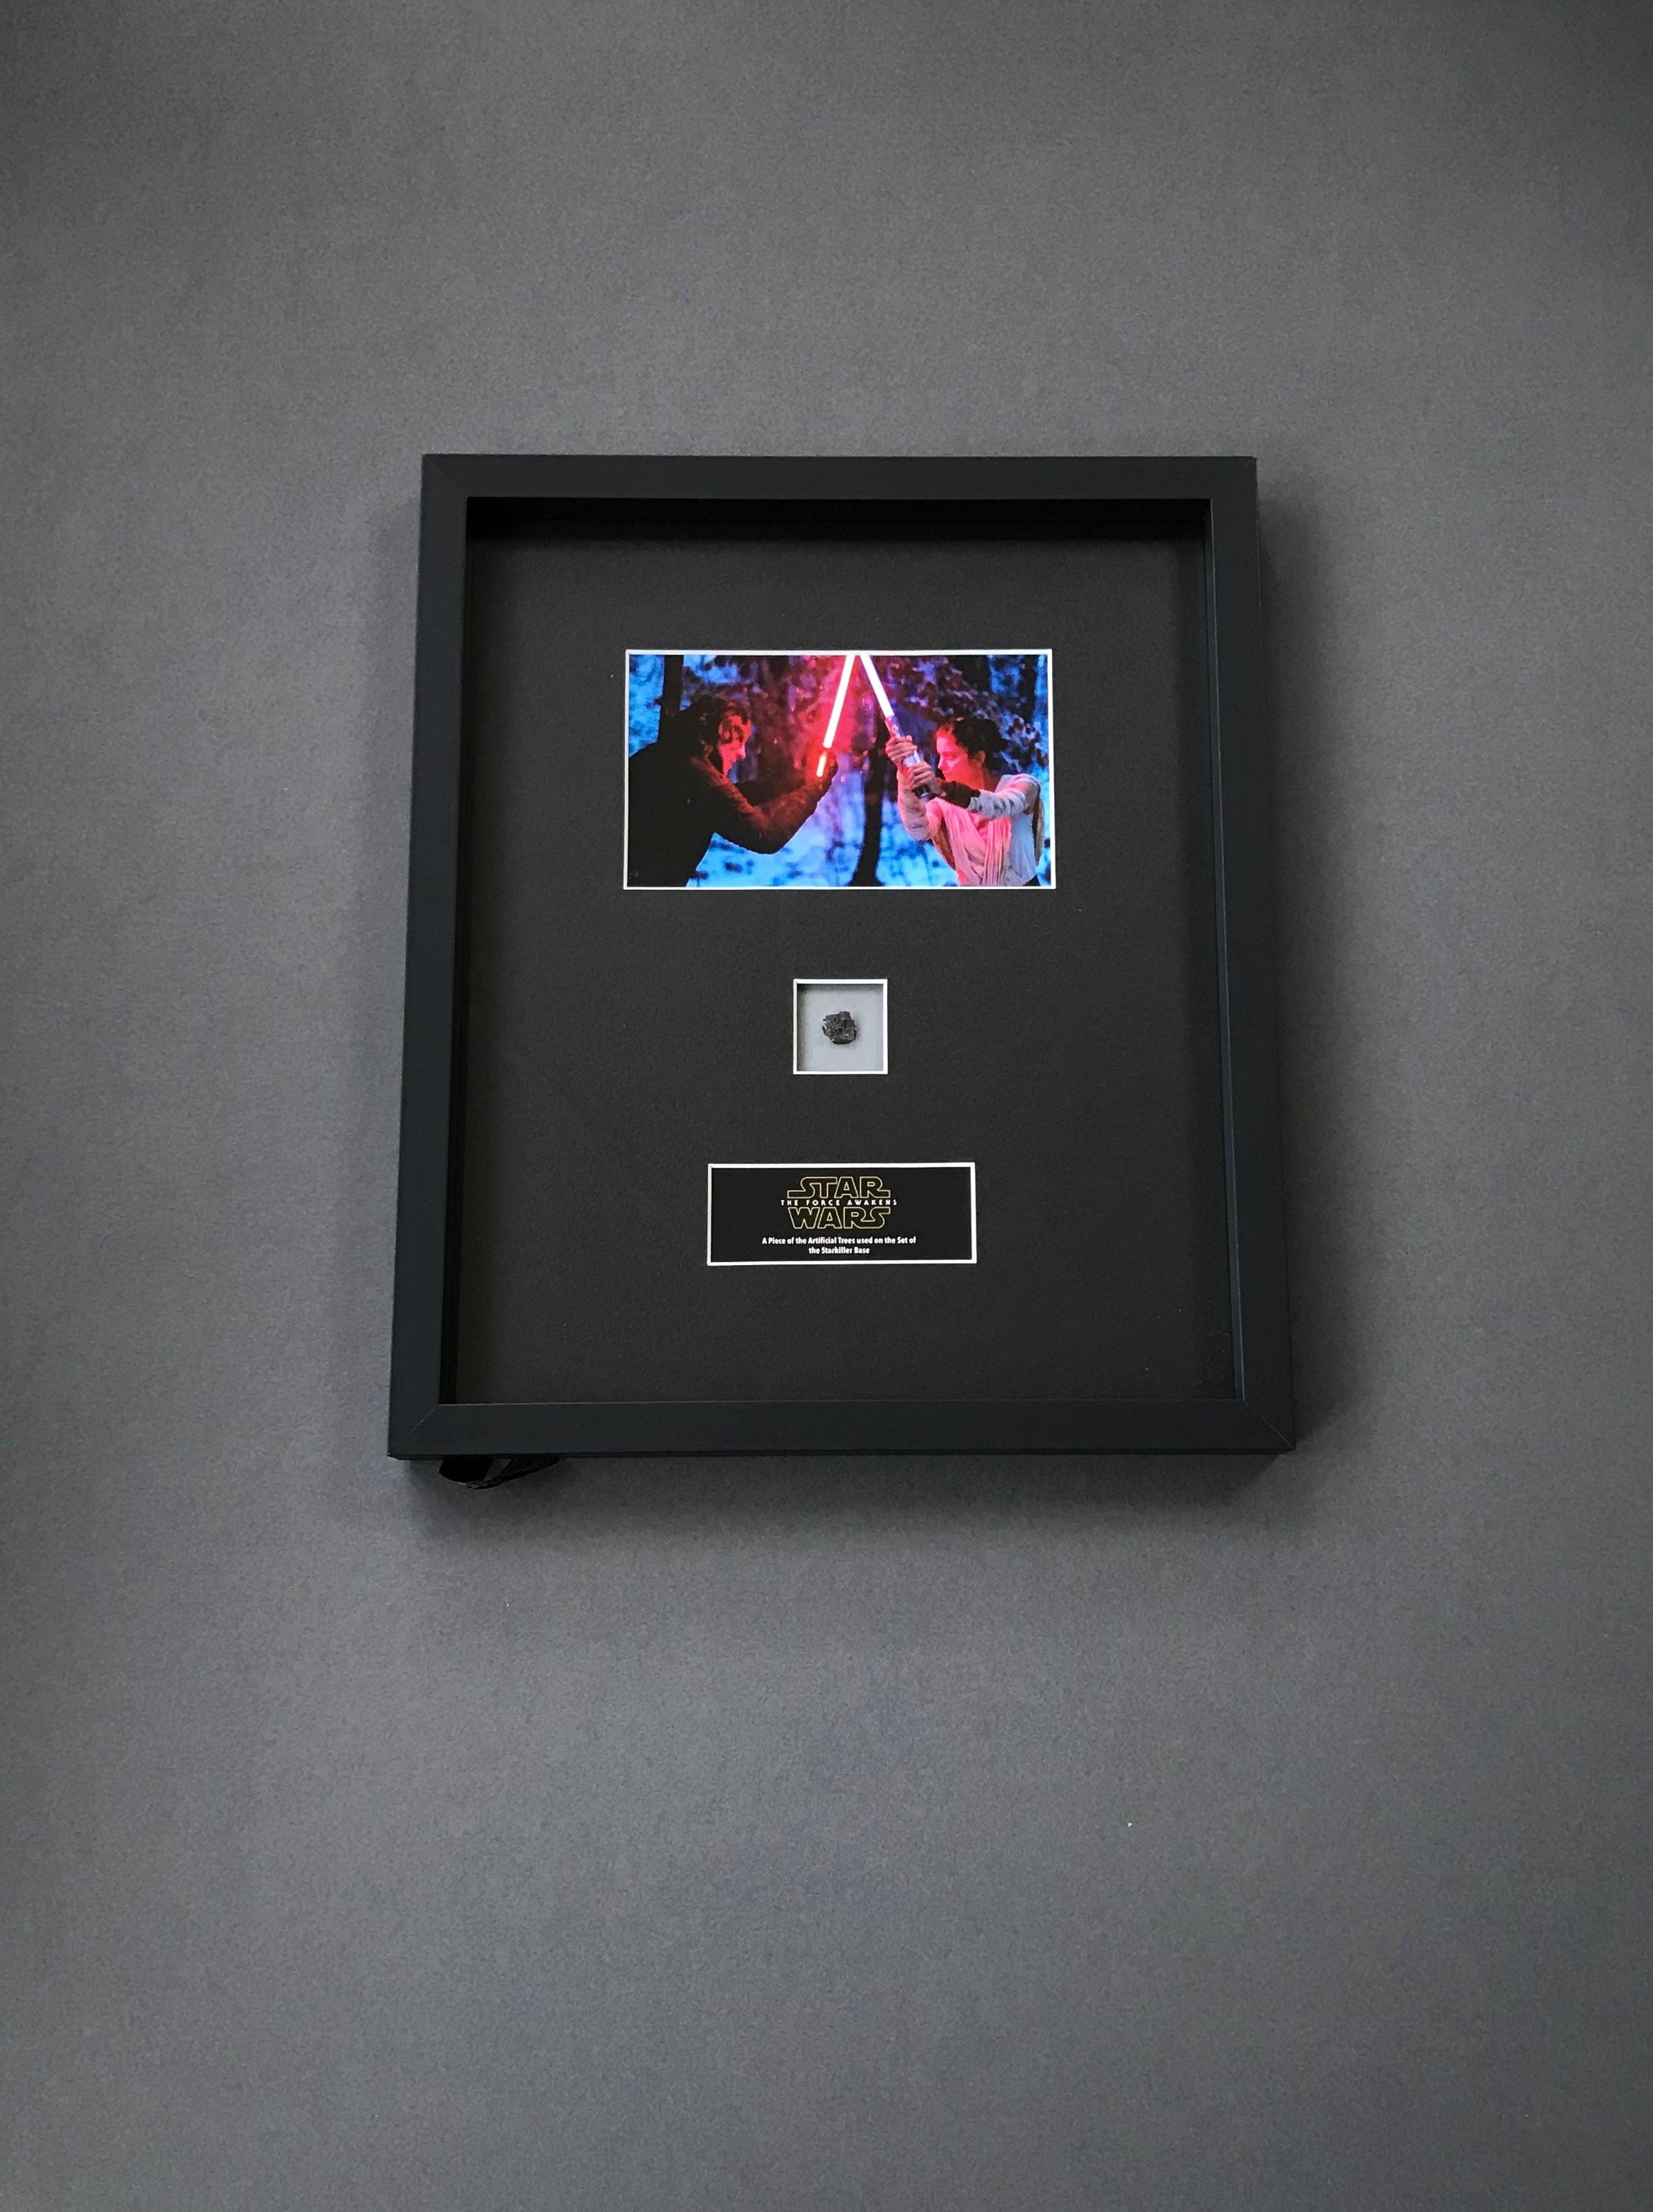 Star Wars: The Force Awakens (2015) - A Piece of the Starkiller Set (SOLD)